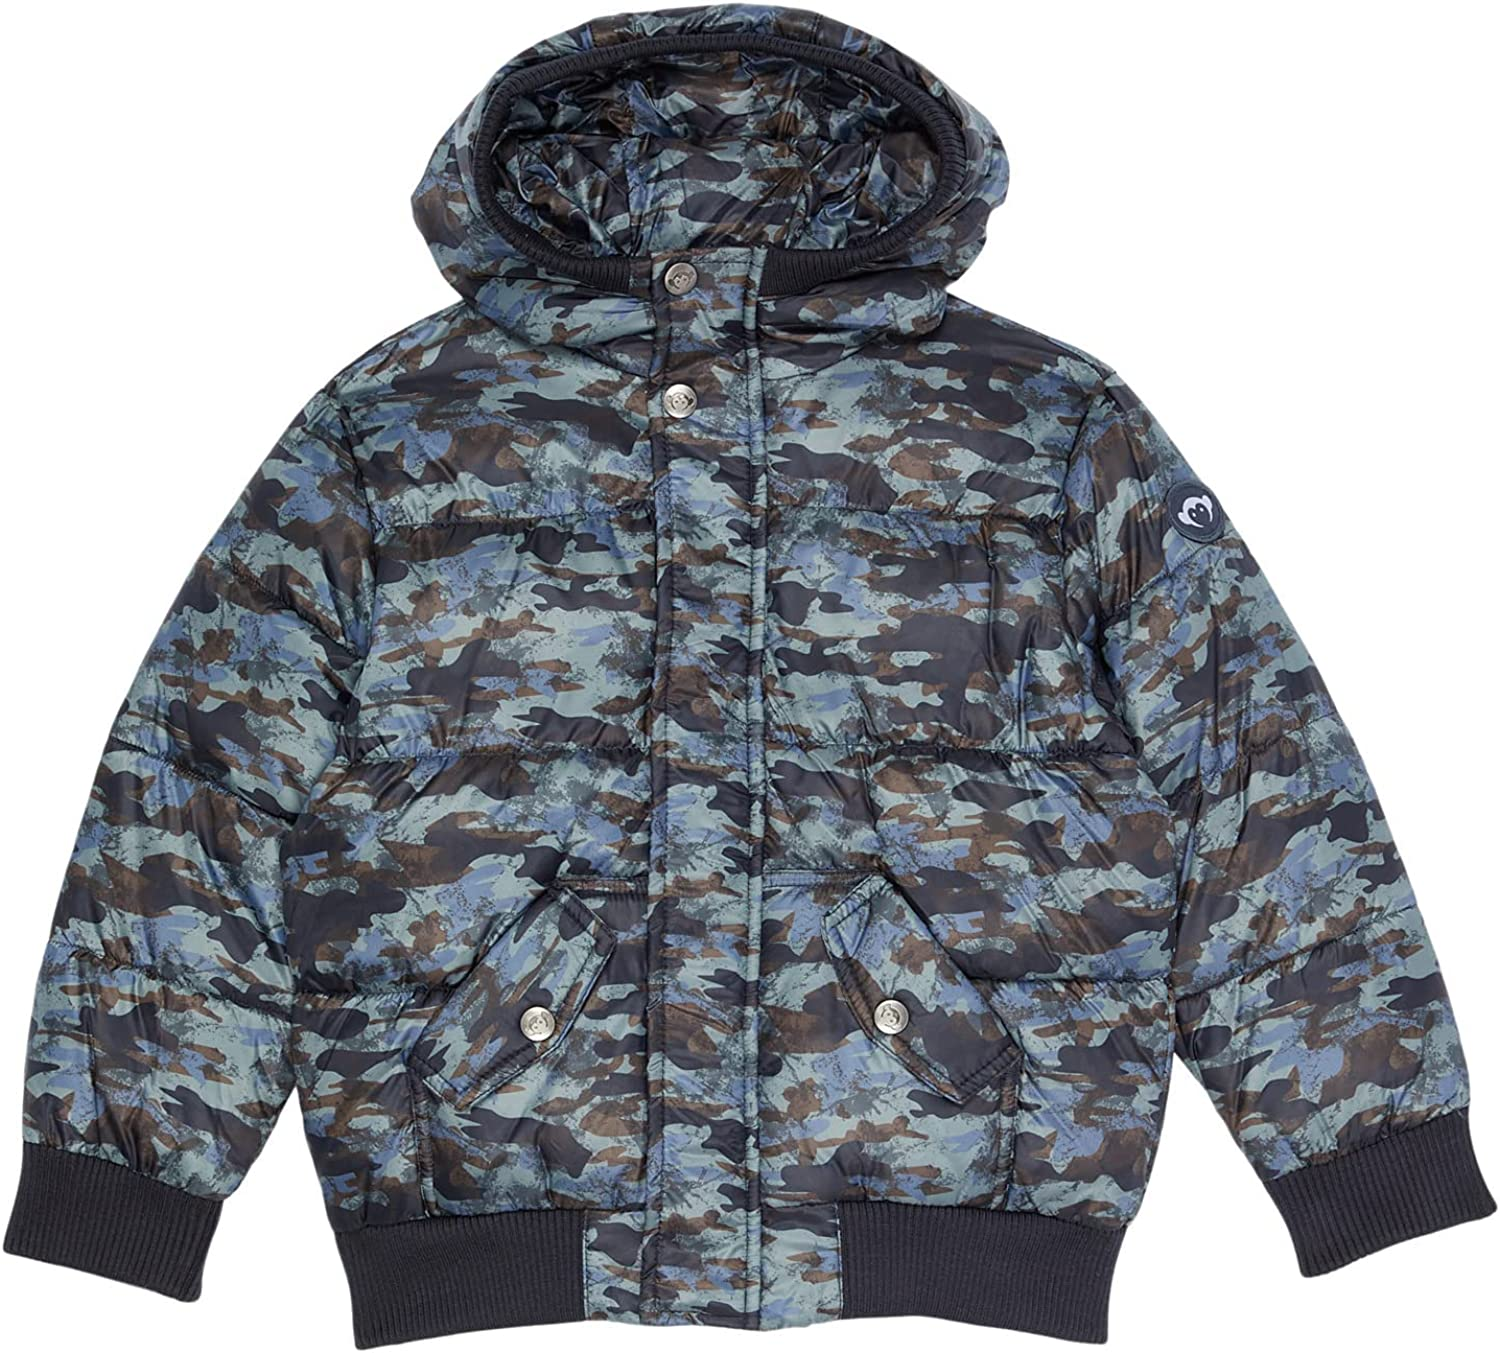 Appaman Kids Boy's Puffy Insulated and Hooded Coat (Toddler/Little Kids/Big Kids): Clothing, Shoes & Jewelry